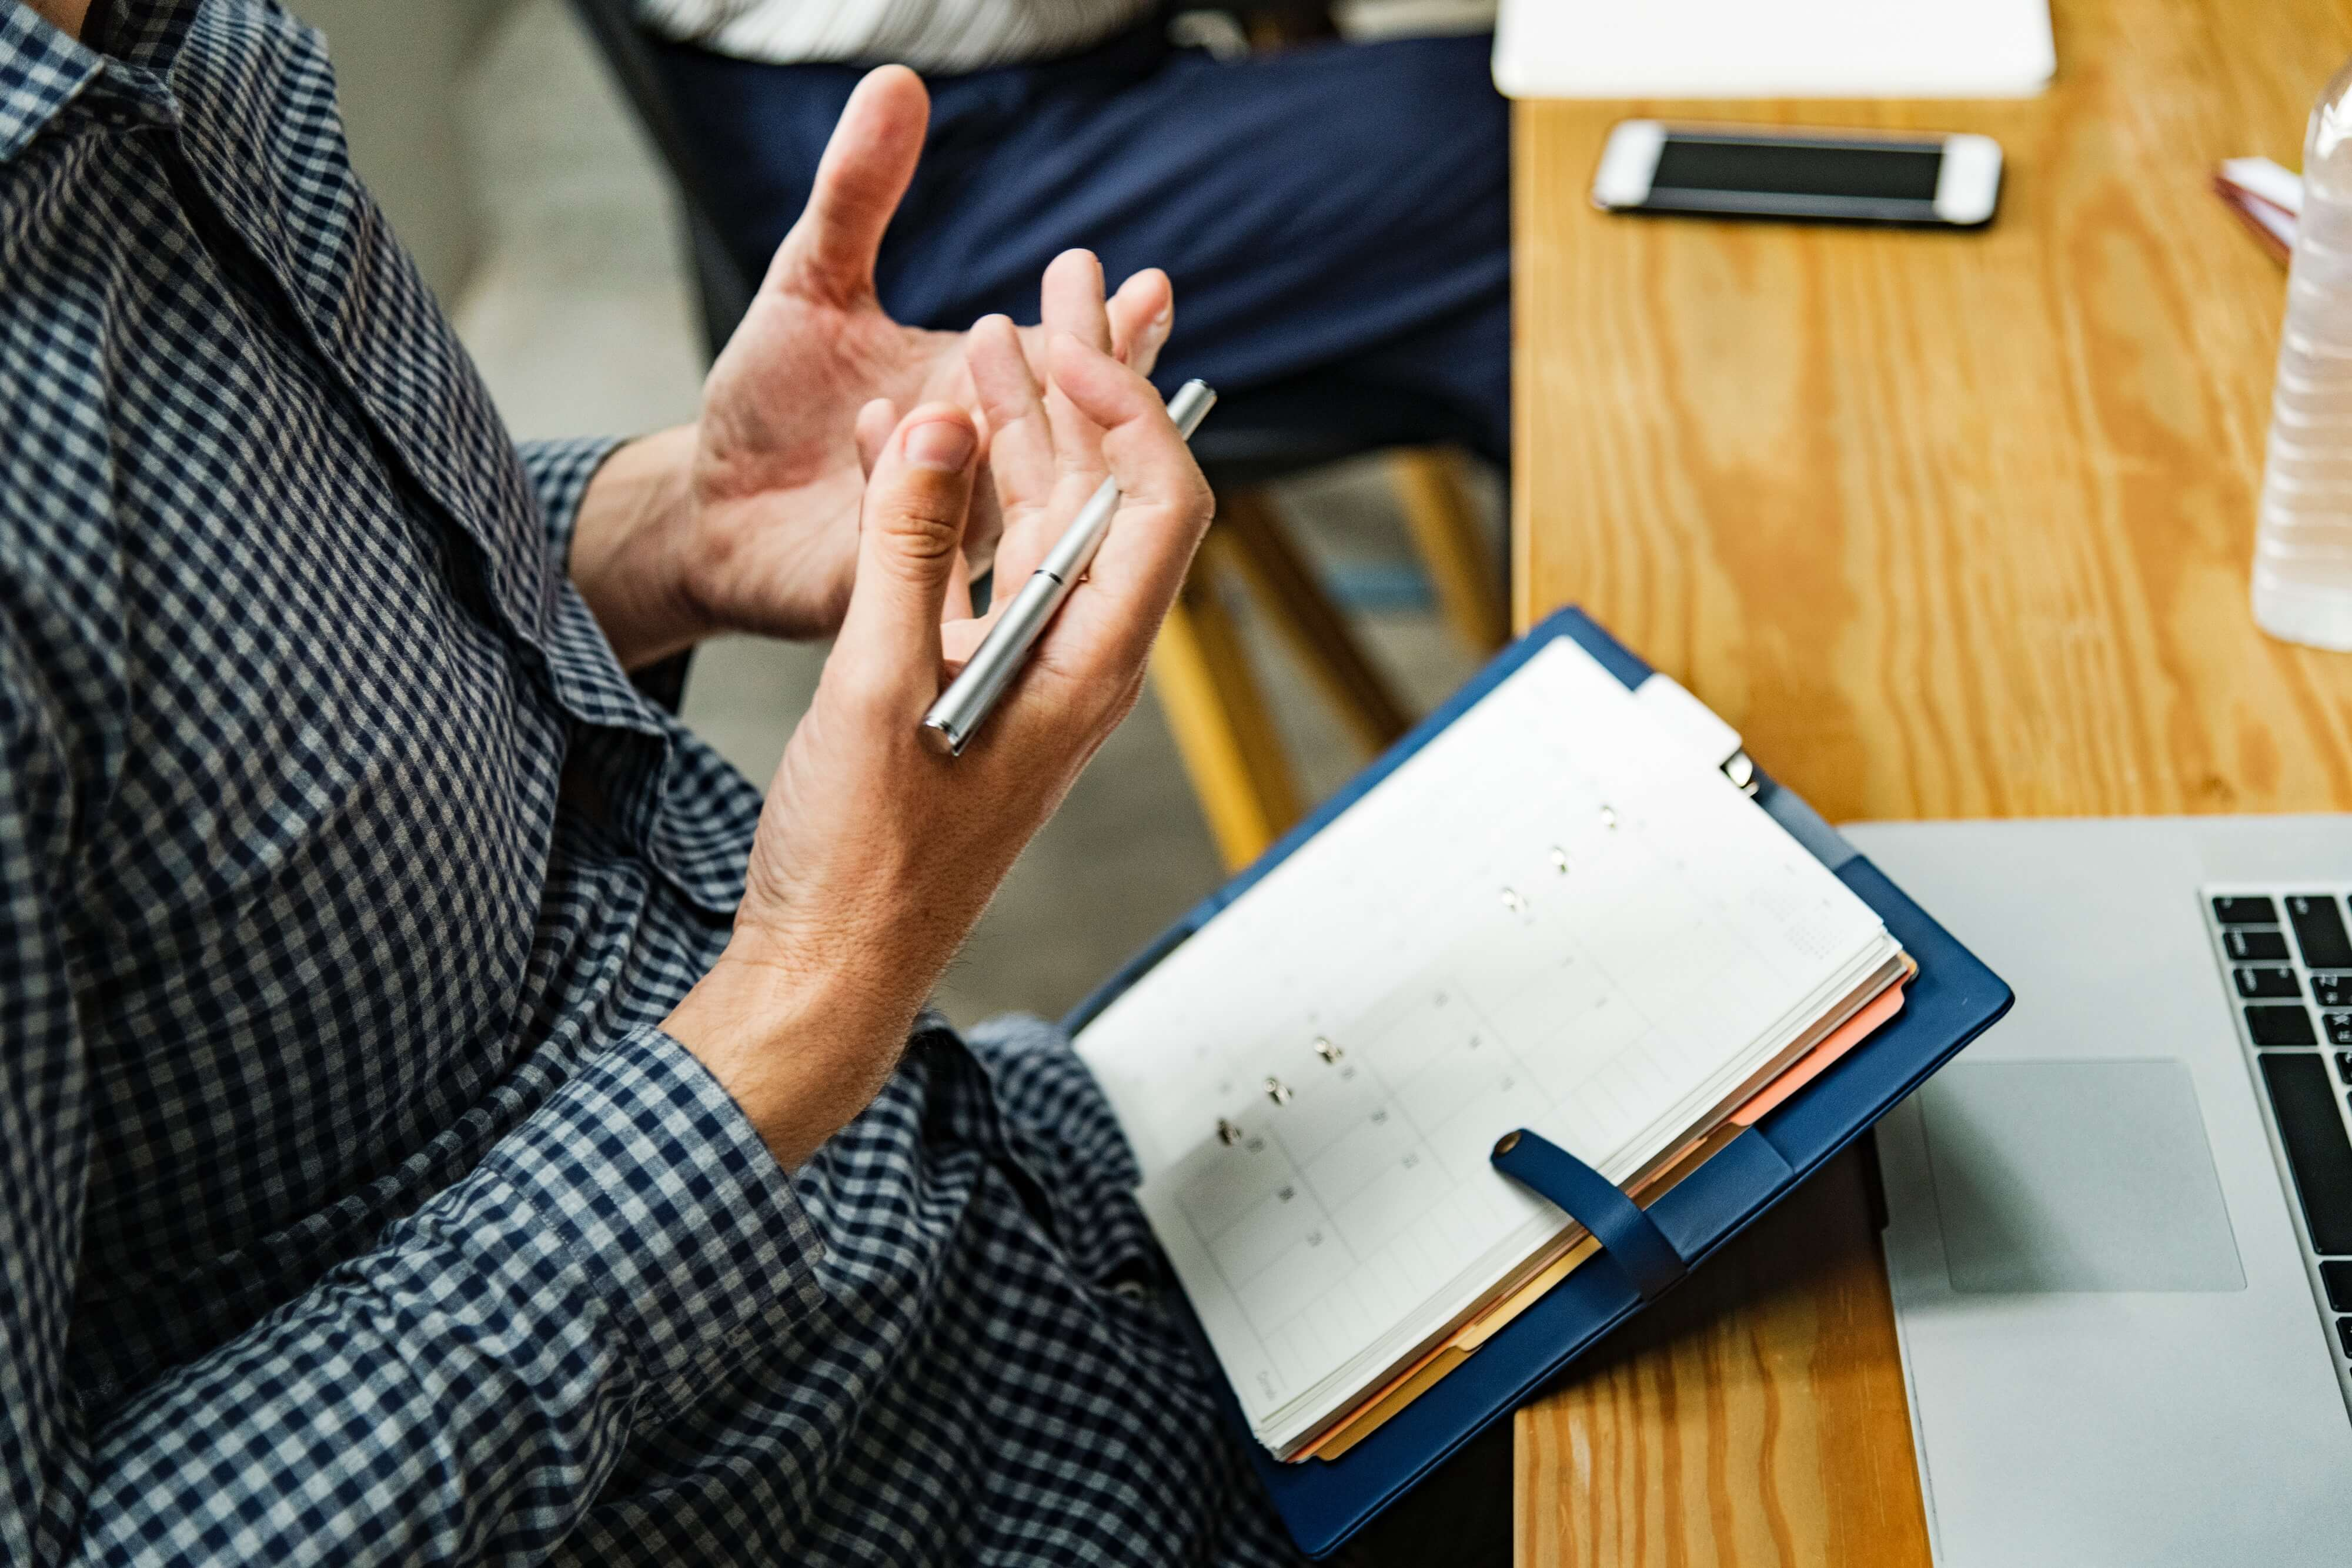 Hands of a person explaining something in front of his agenda